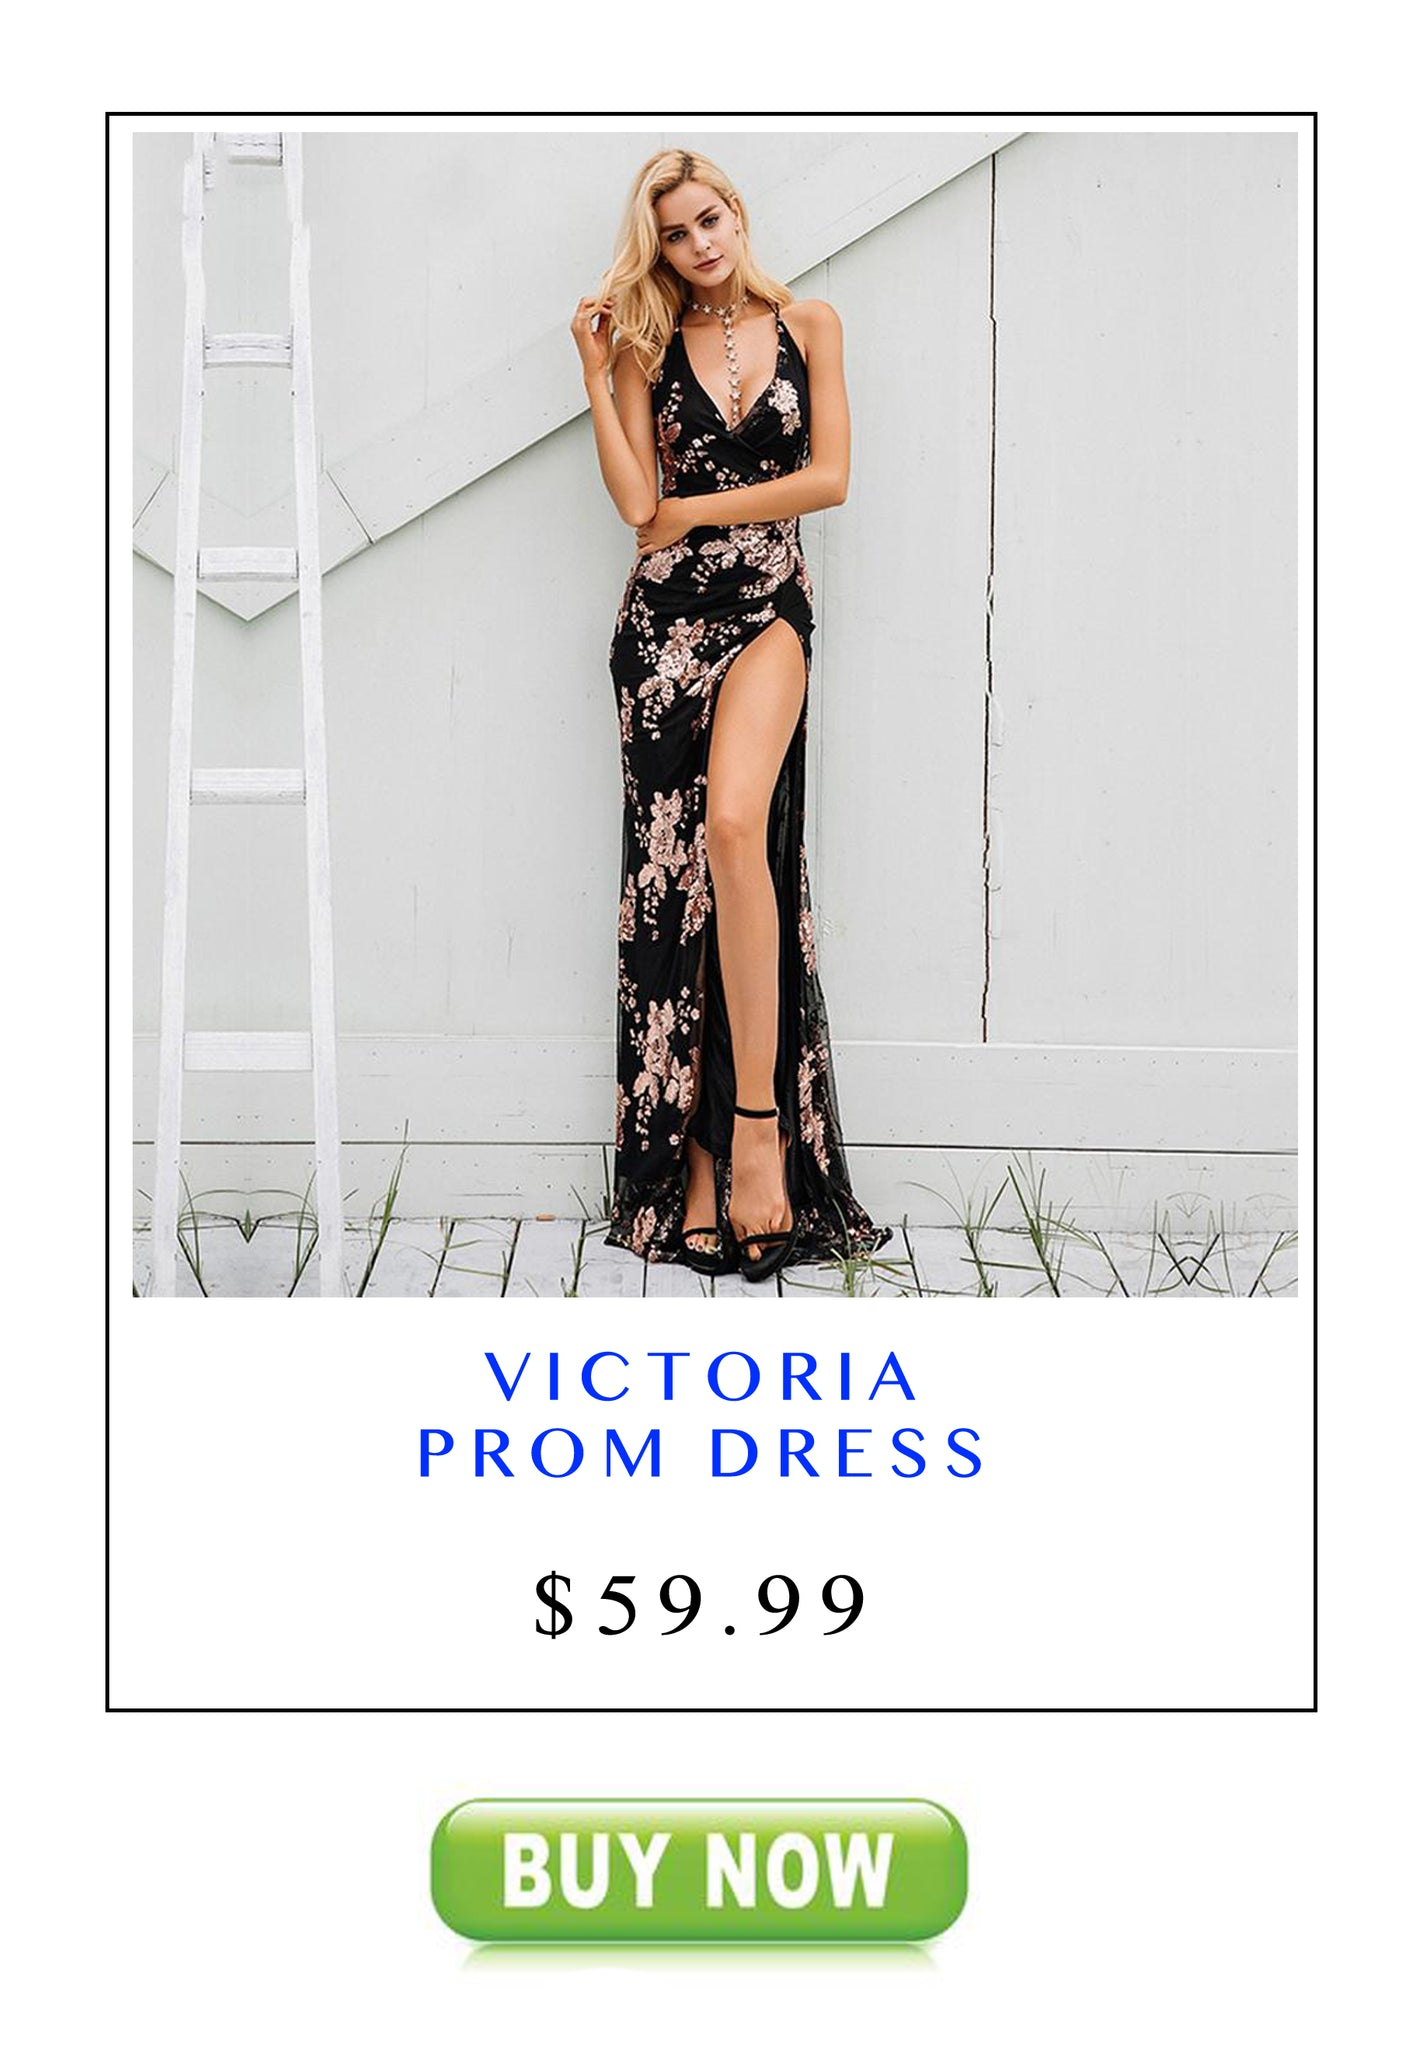 Long Prom Dresses 2018 Victoria Floral Sequin Backless Strappy Slit Maxi Dress